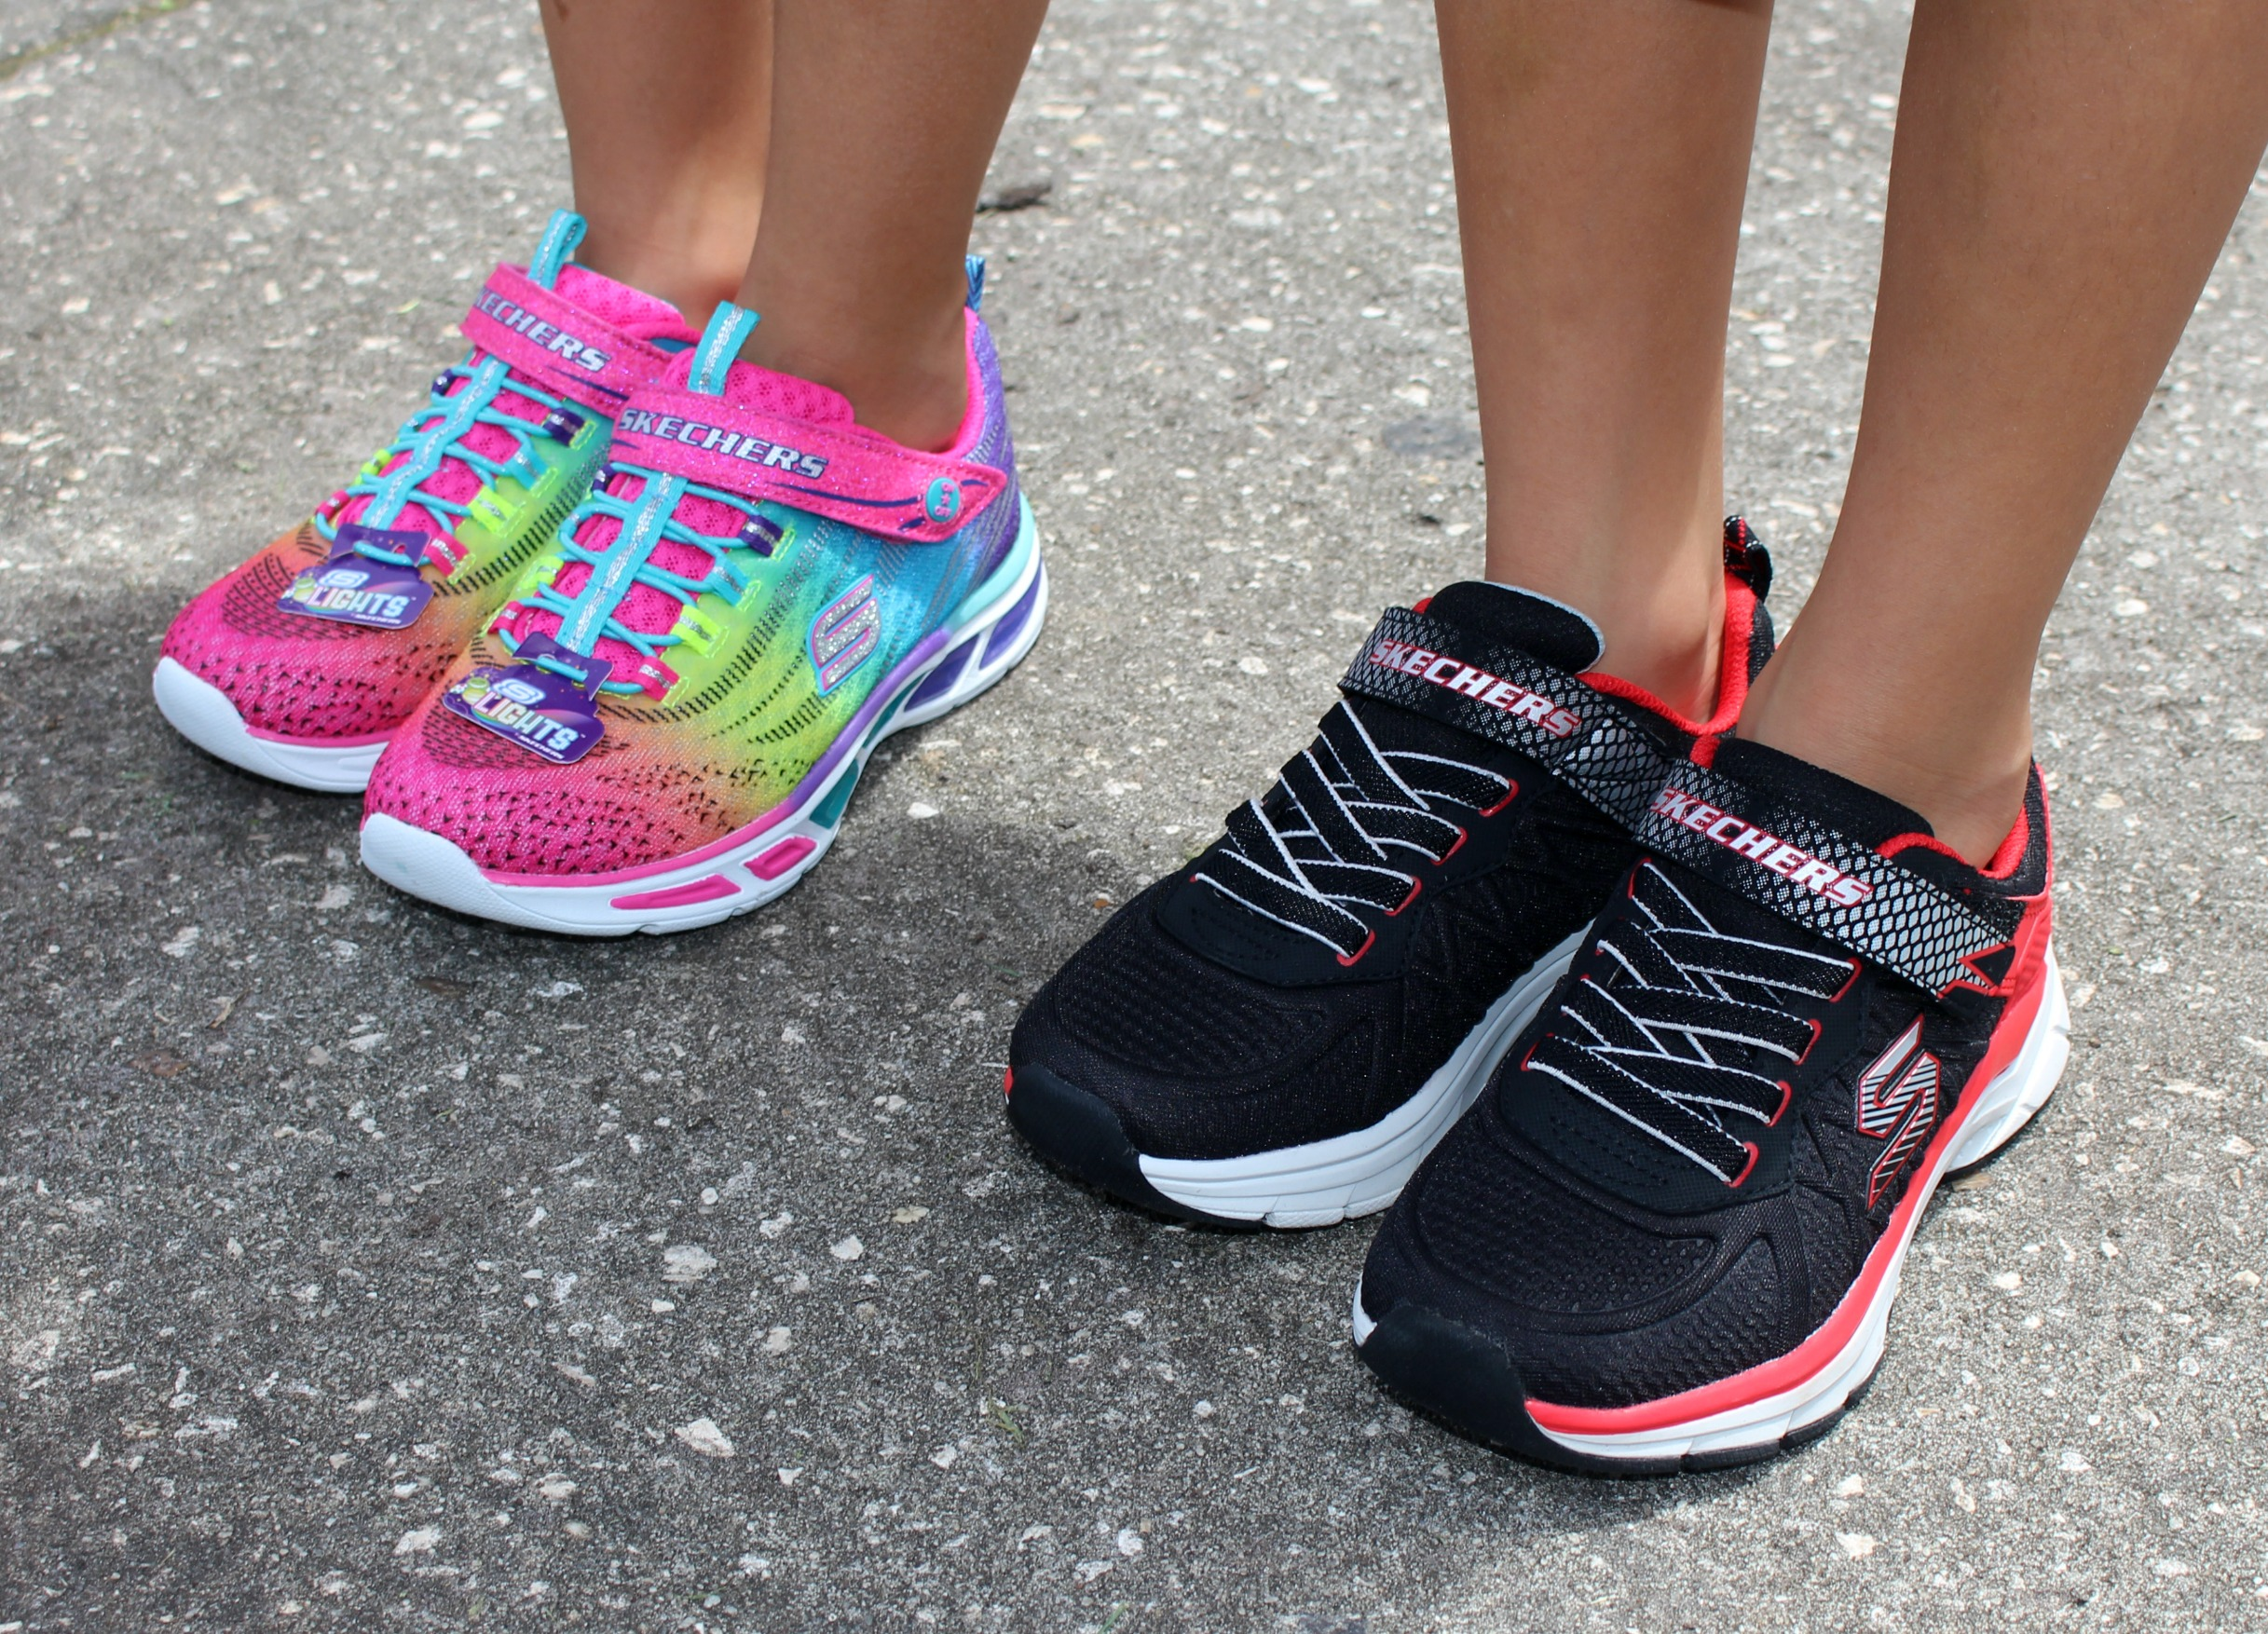 Gear-Up-With-Sears-Sneakers